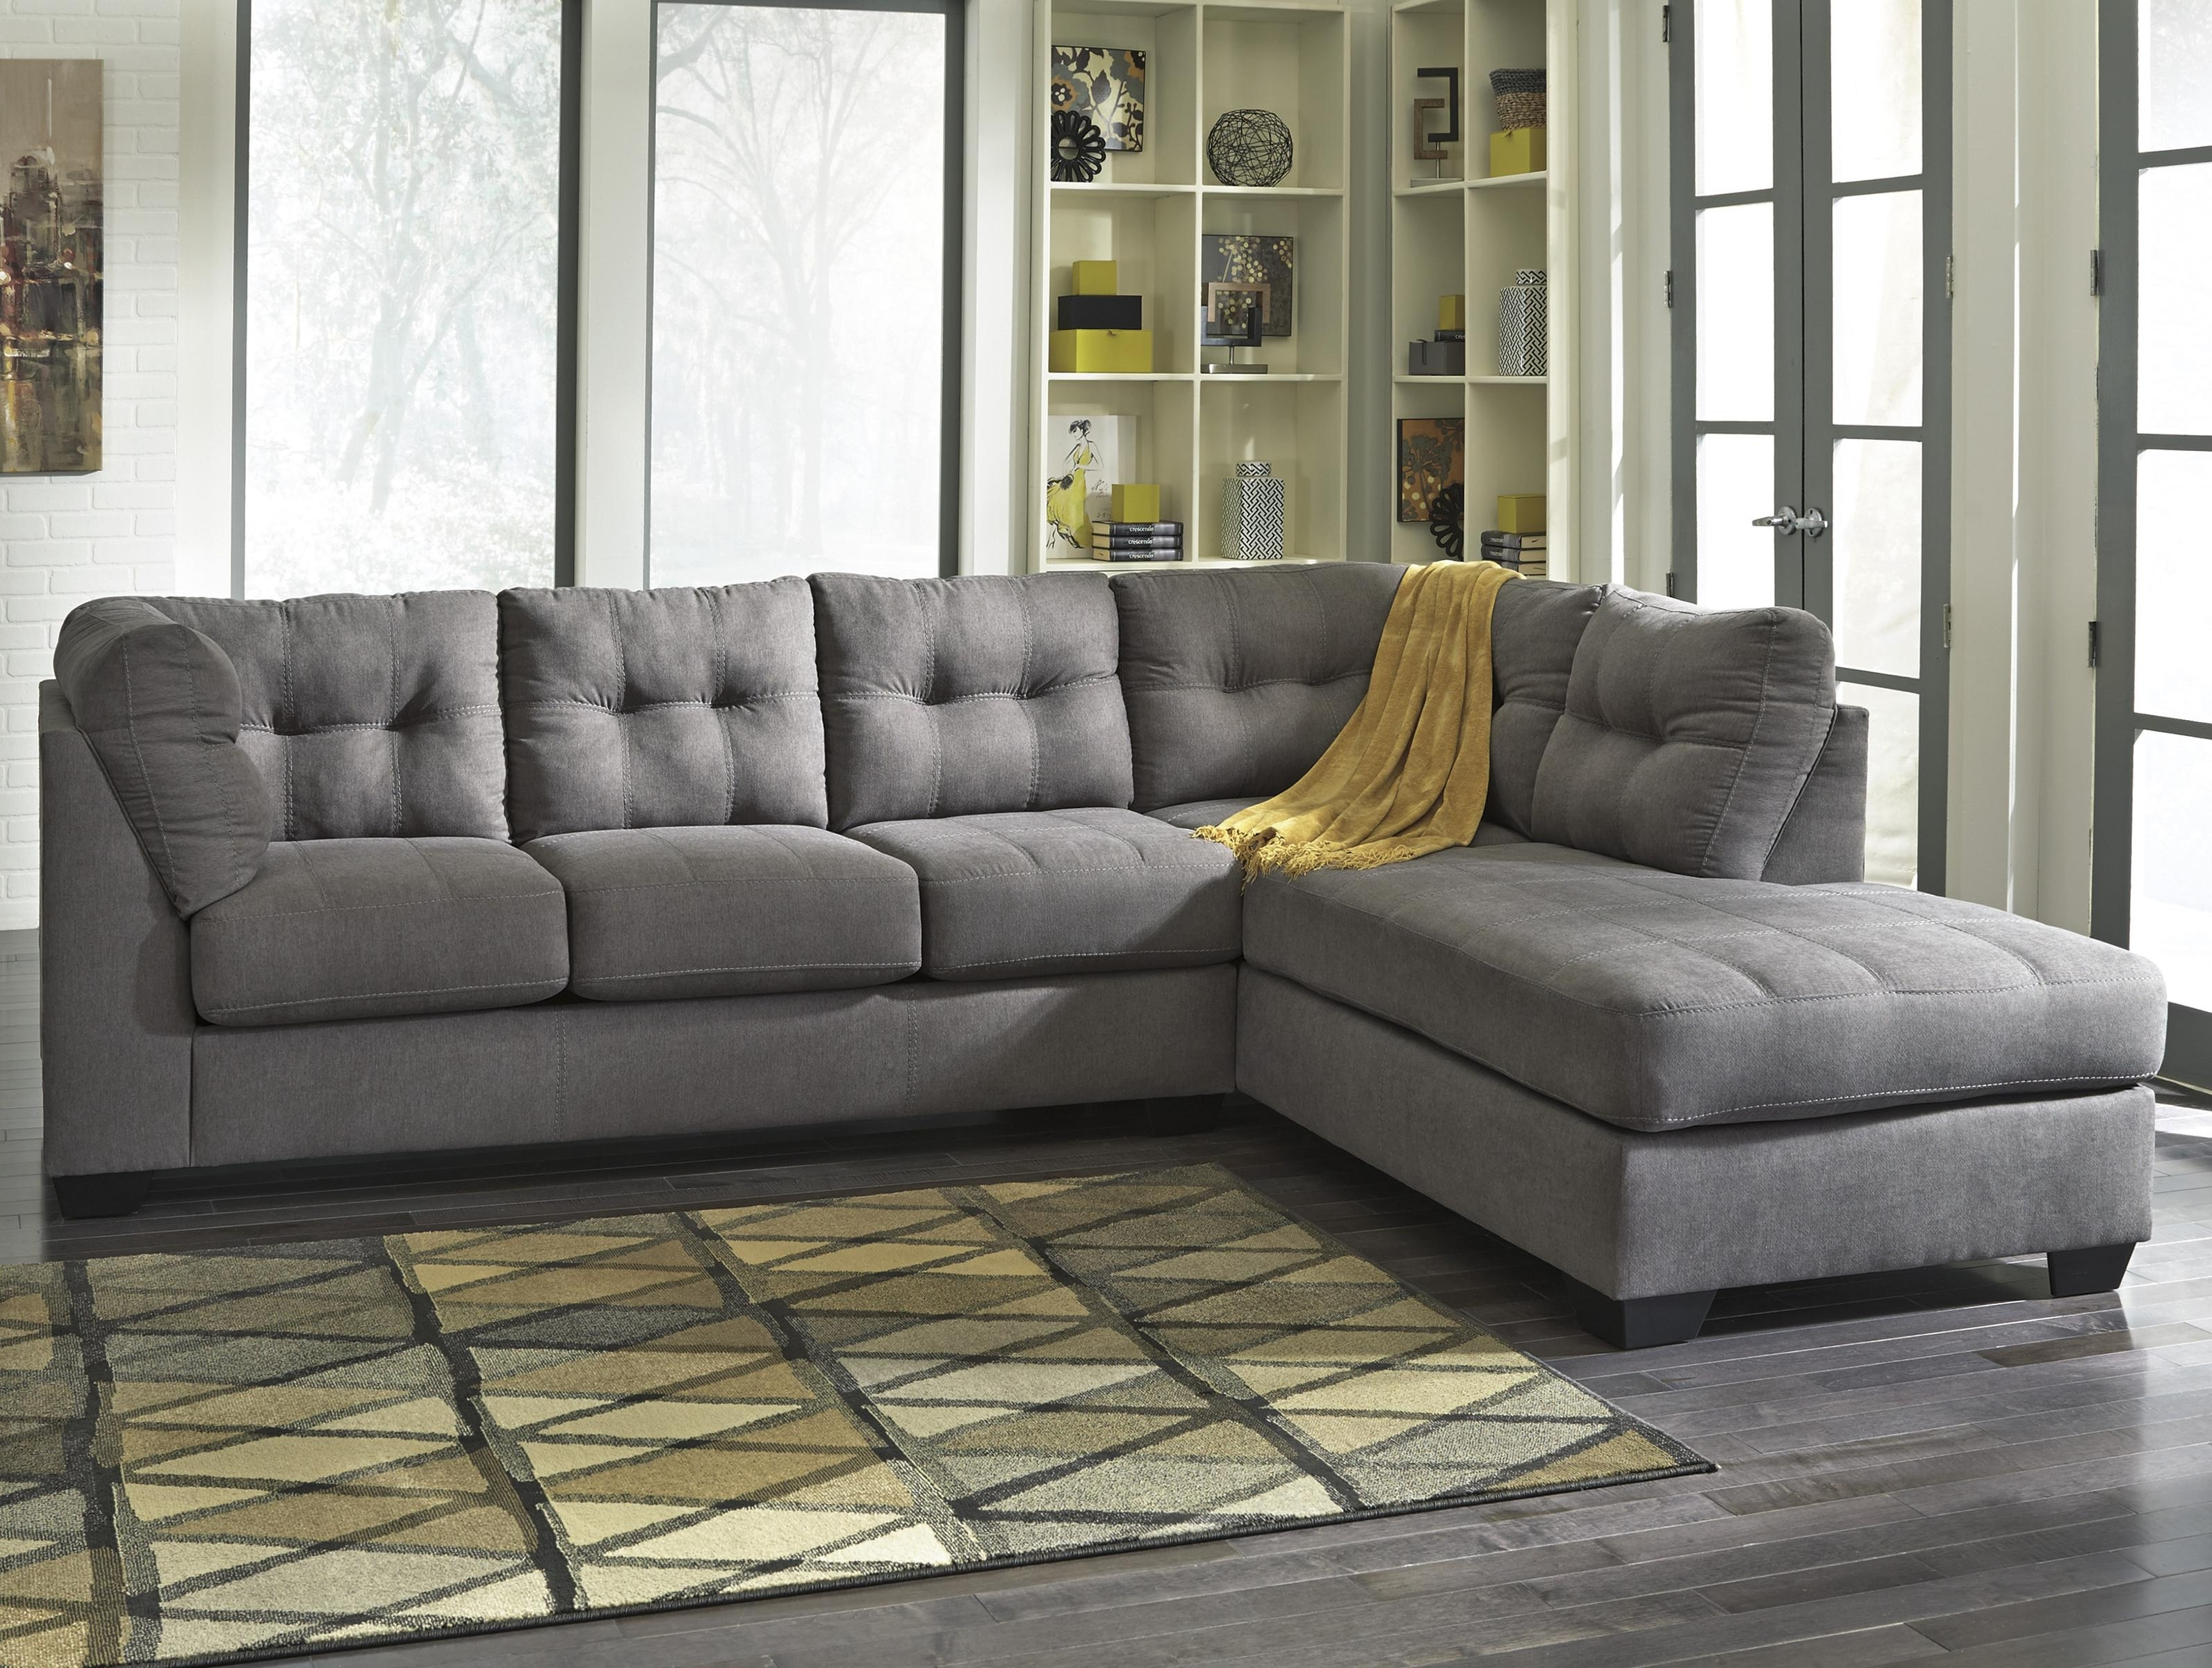 Preferred Sectional Sofa Design: Left Sectional Sofa Side Chaise Handed Within Sleek Sectional Sofas (View 8 of 15)